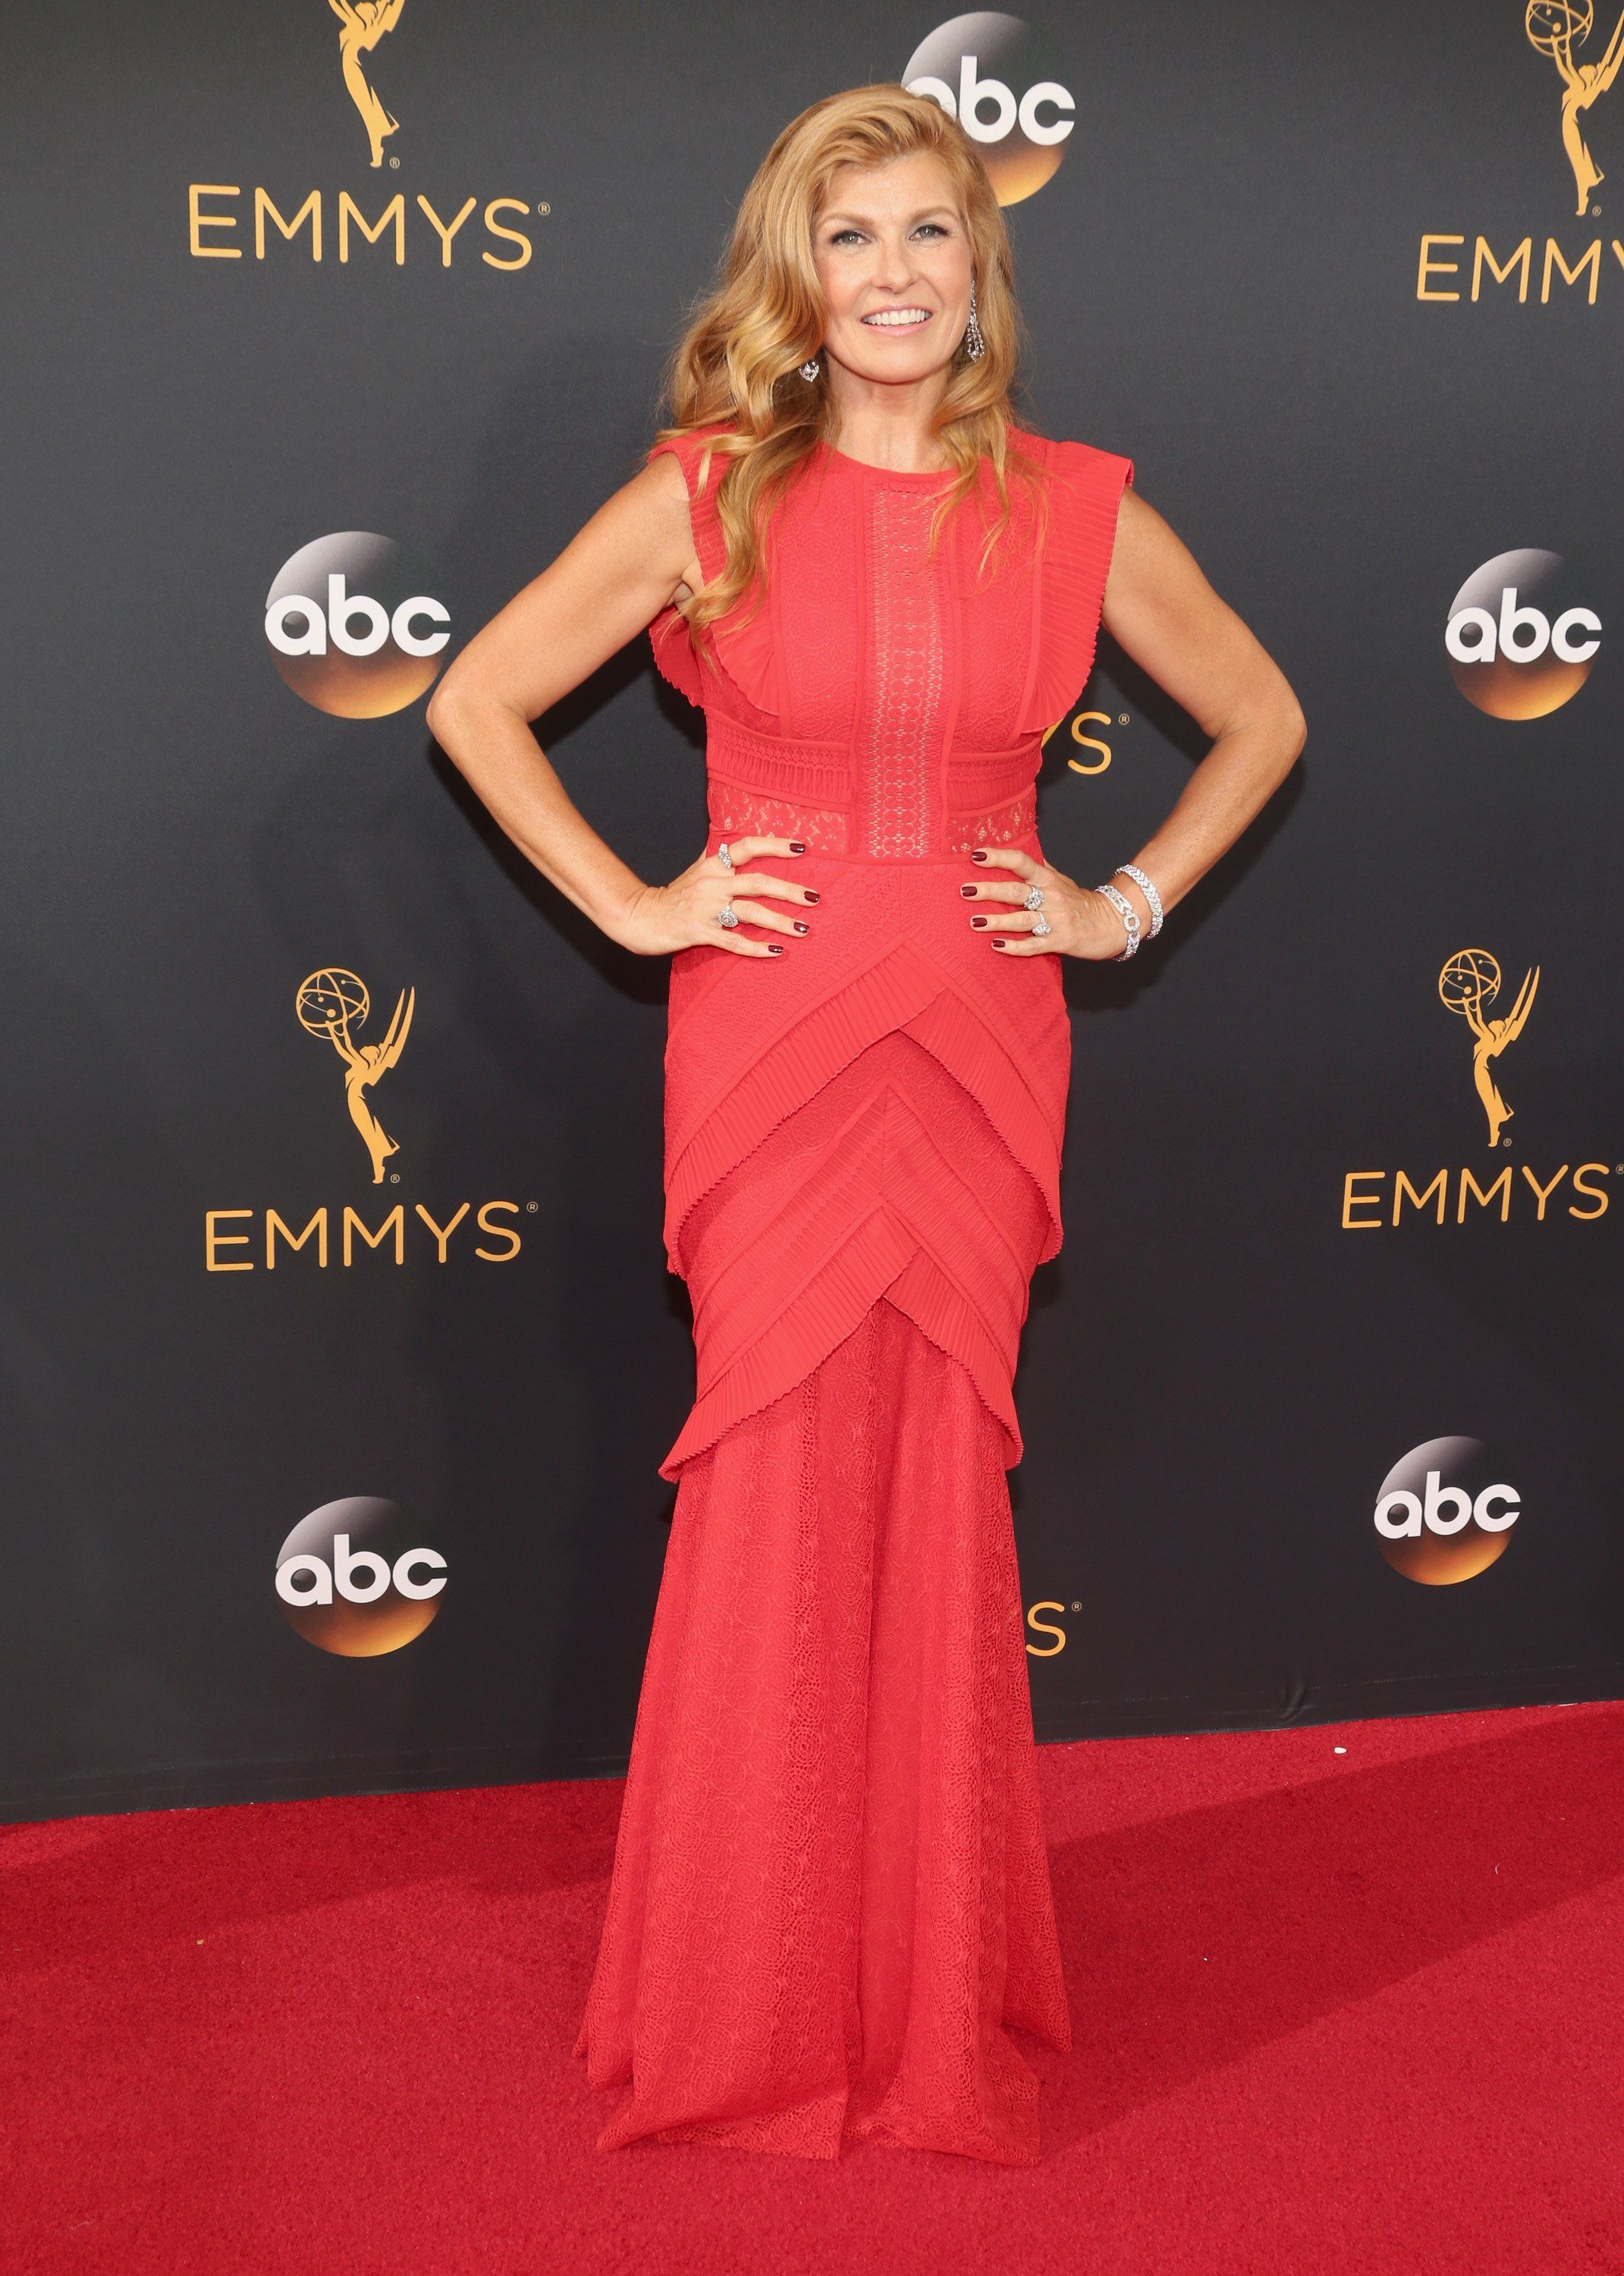 Emmy awards fashionulive from the red carpet fashion styles